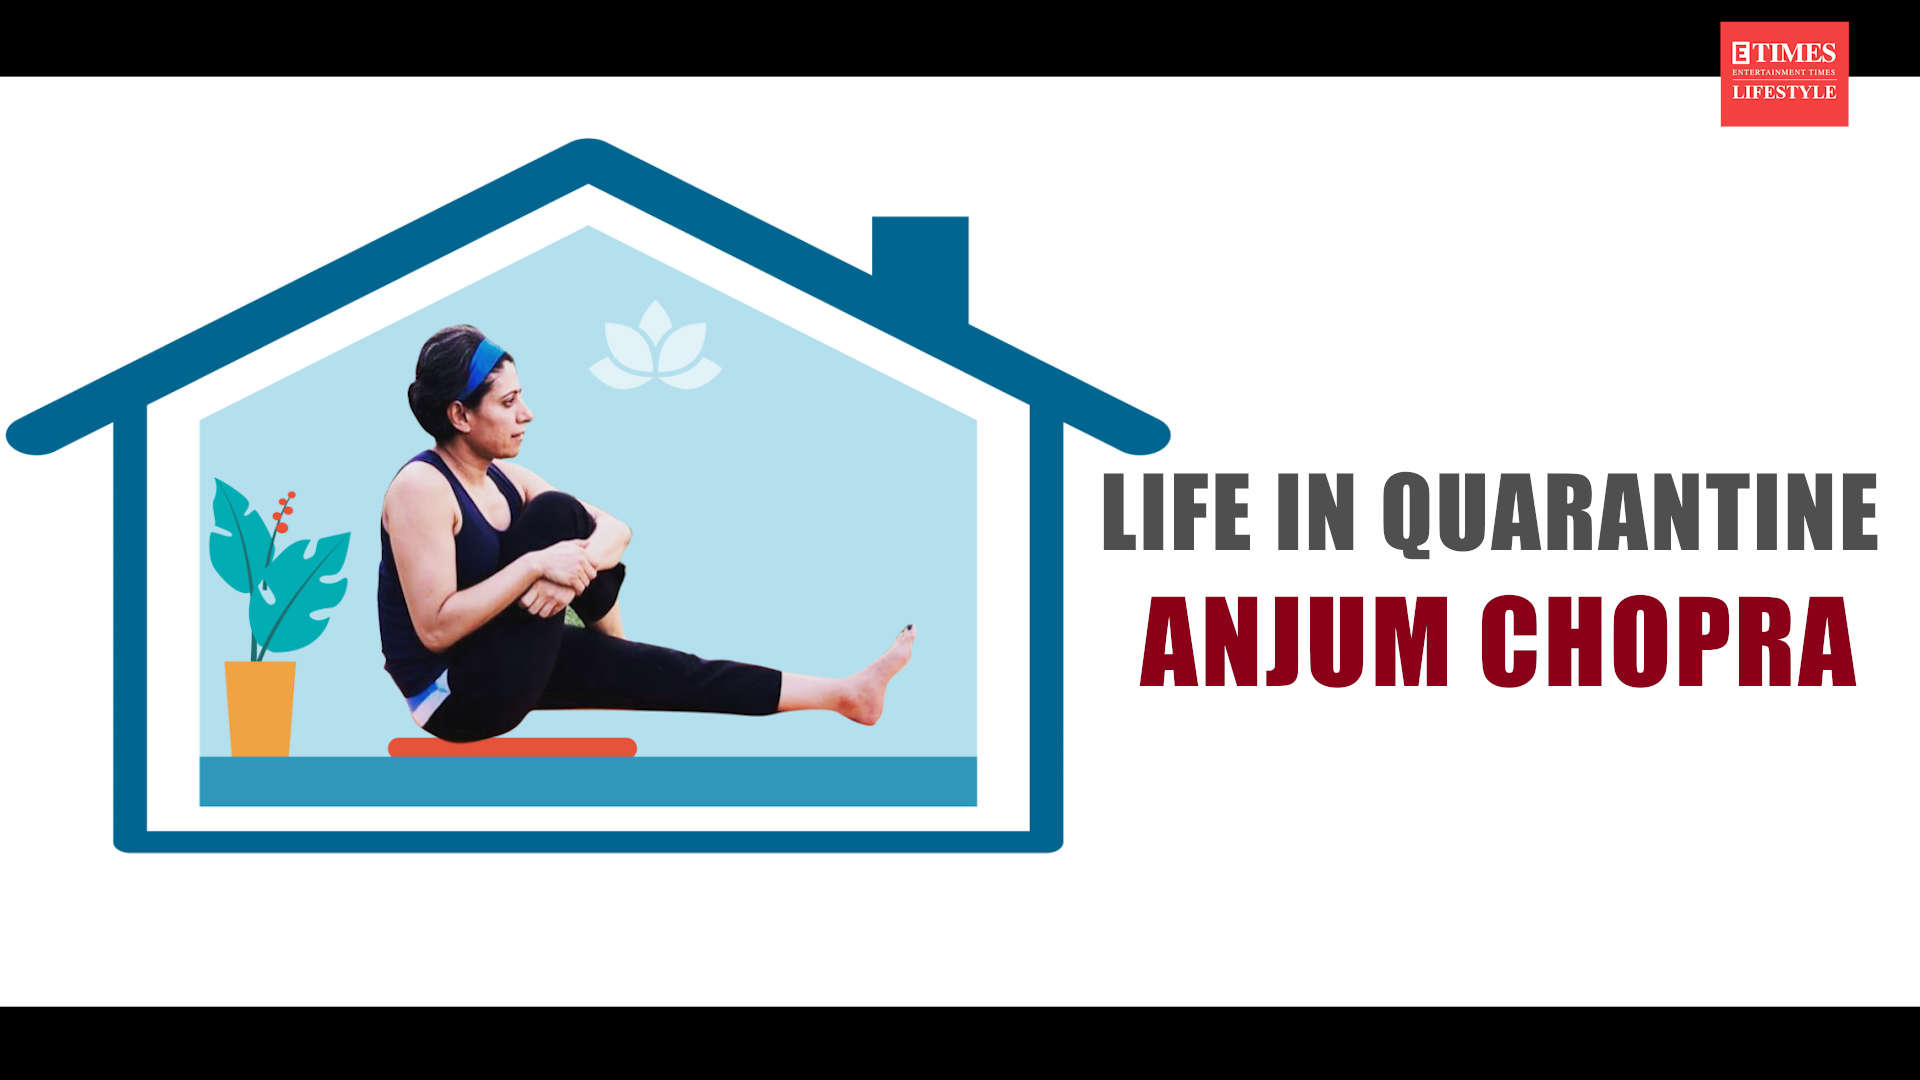 life-in-quarantine-with-anjum-chopra